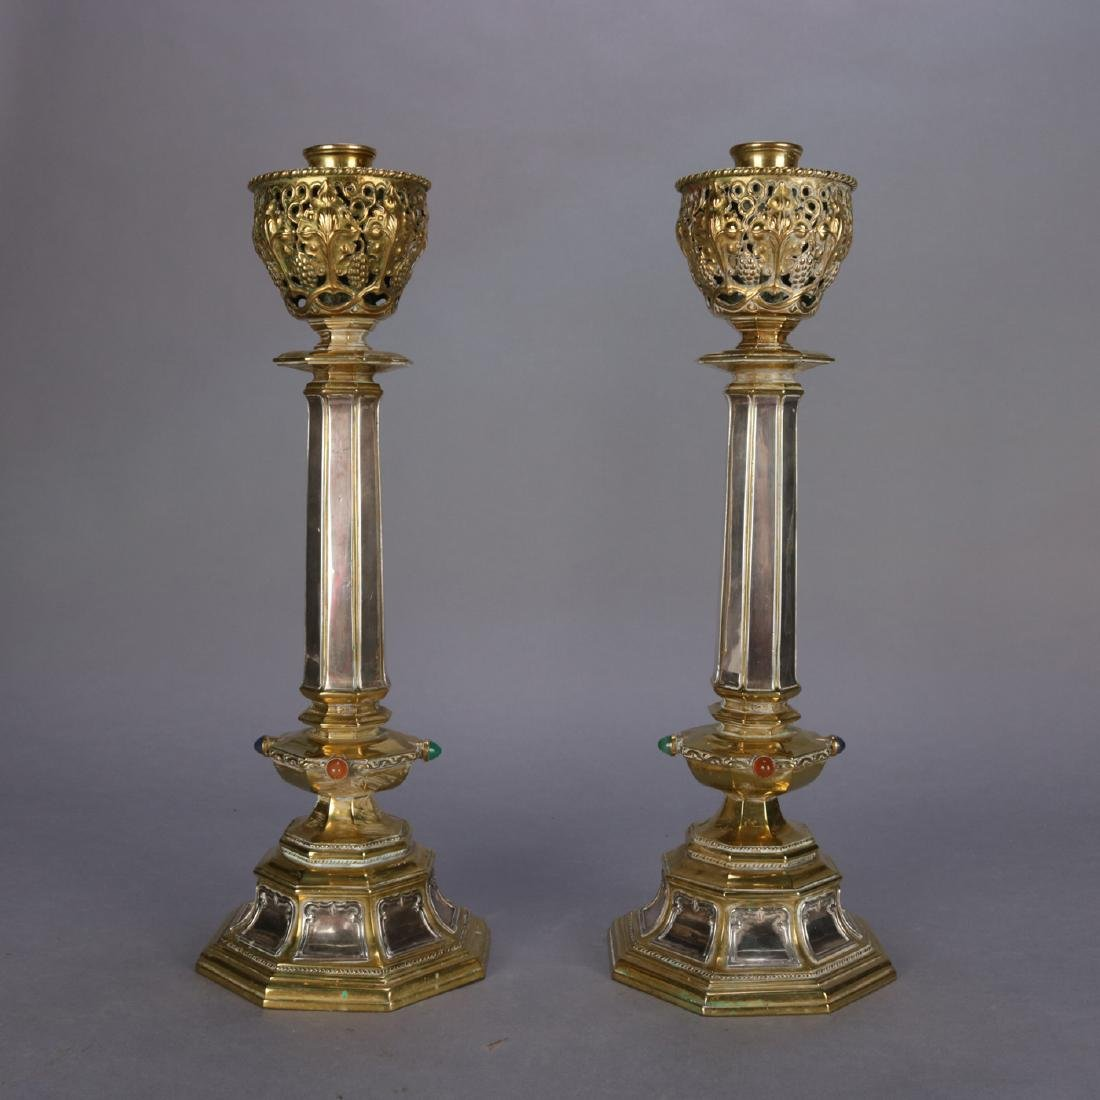 Antique Brass & Silver Jeweled Ceremonial Candle Sticks - 7